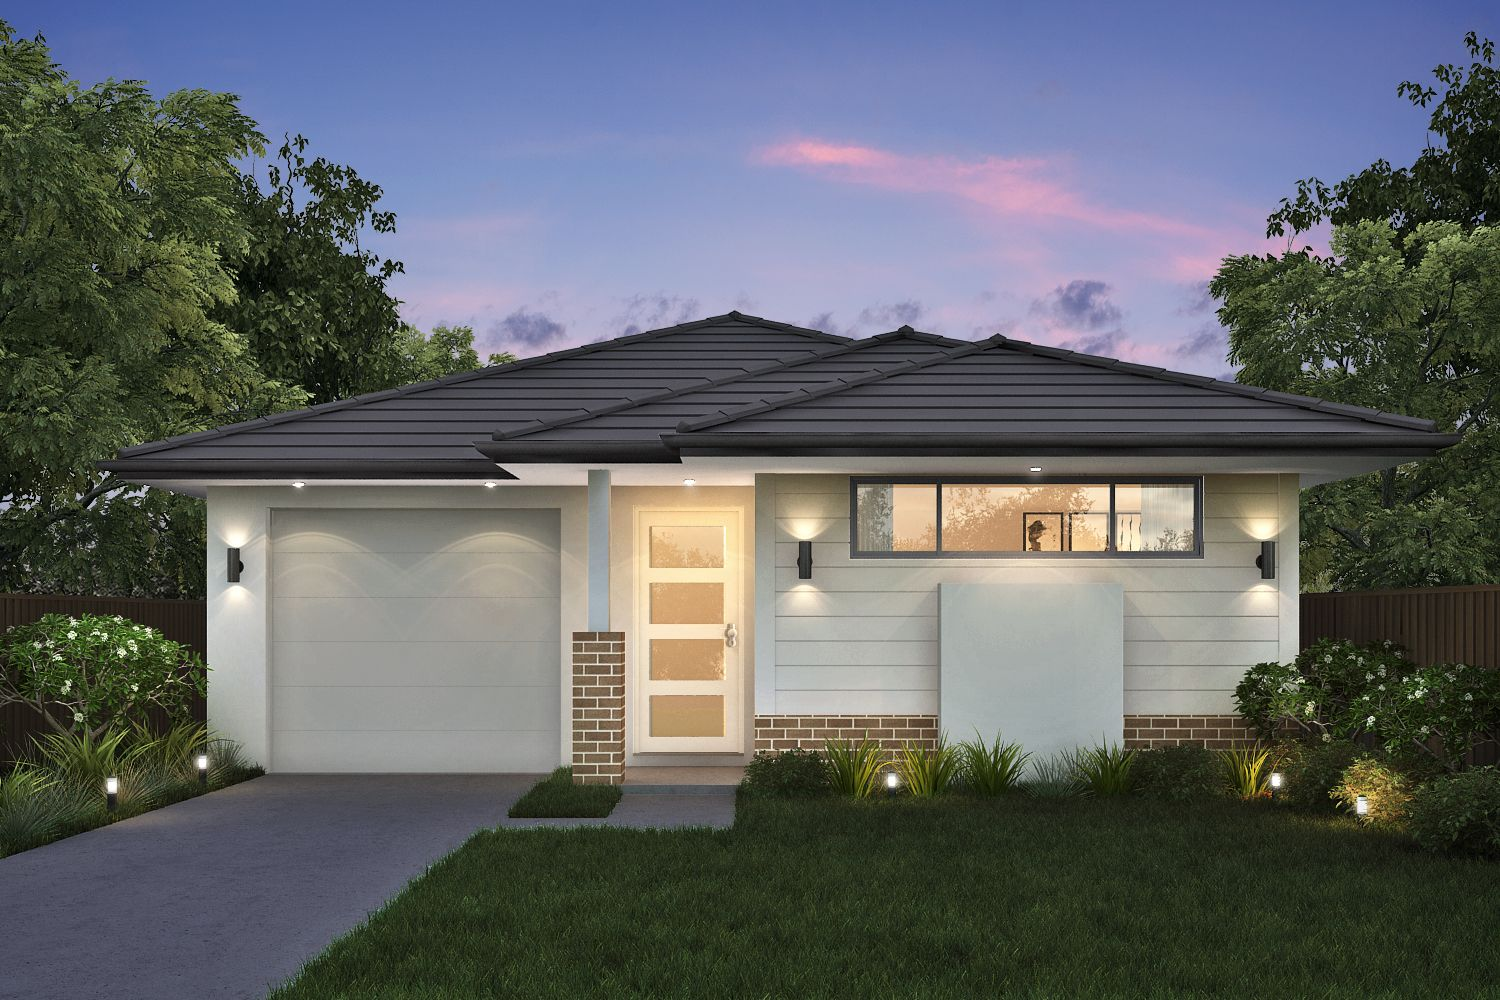 Lot 4797 Proposed Road, Marsden Park NSW 2765, Image 0